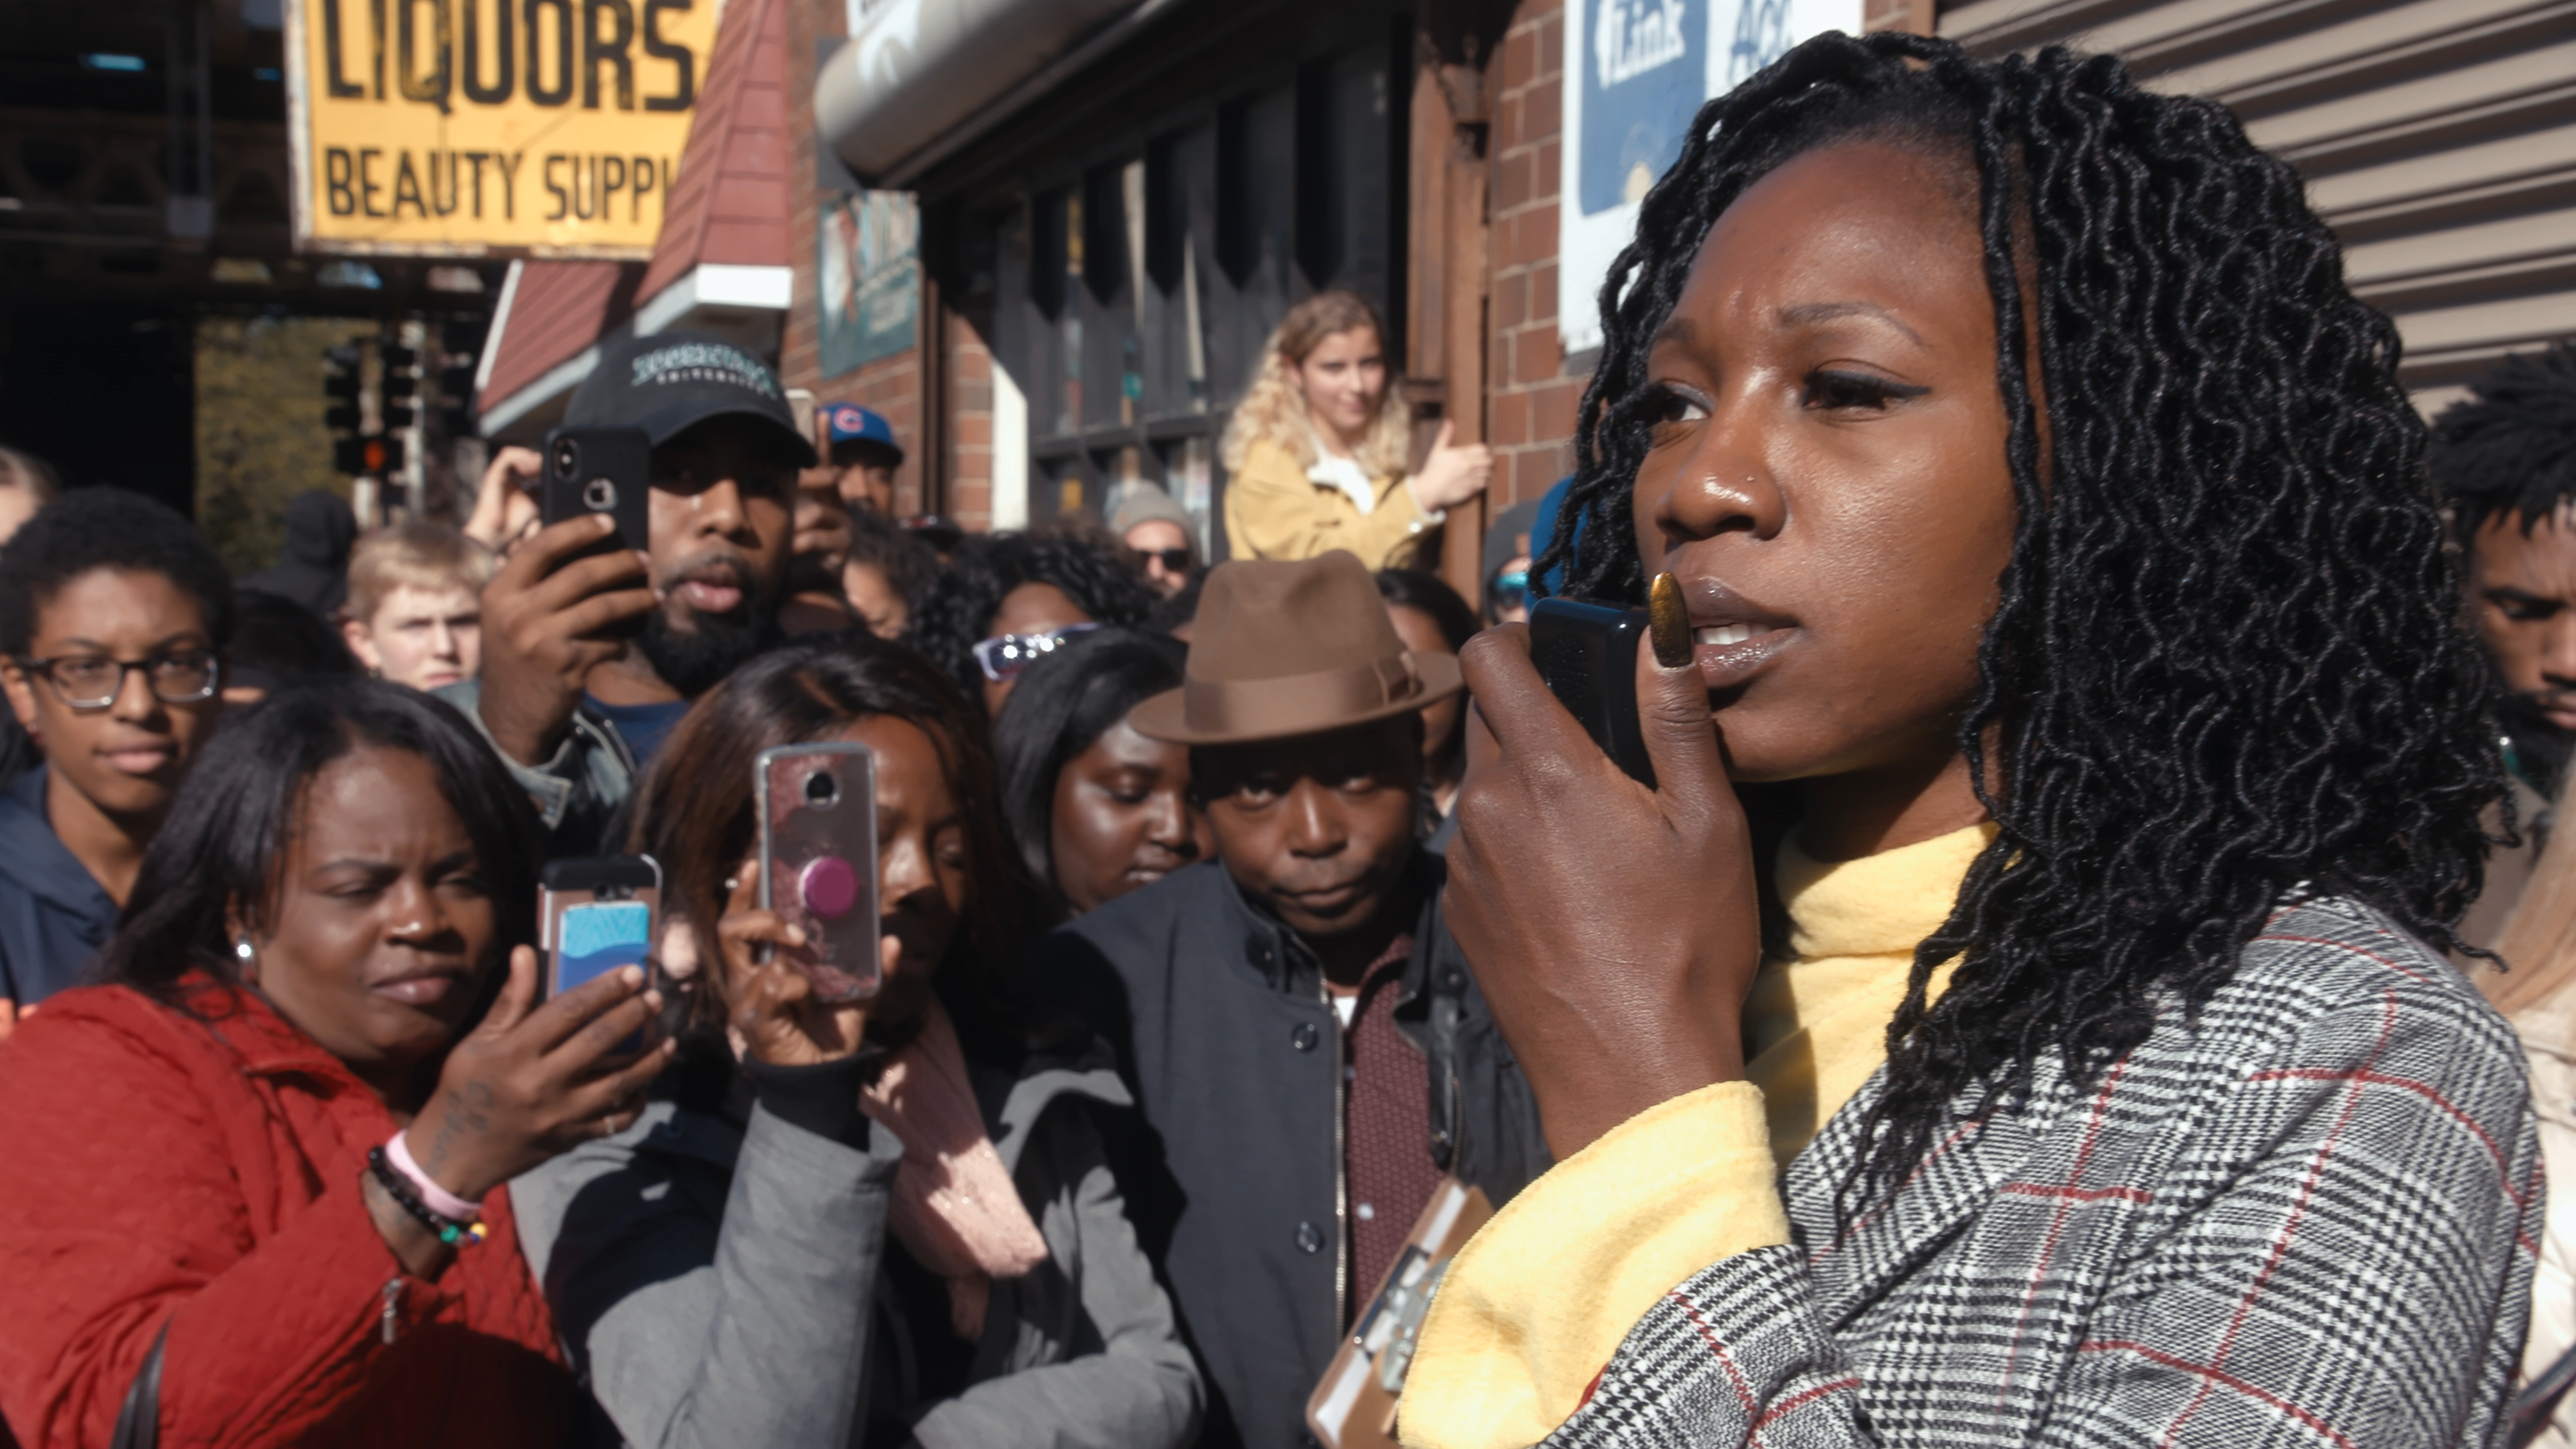 Amara Enyia holds a press conference with Chance the Rapper and Kanye West in Southside Chicago